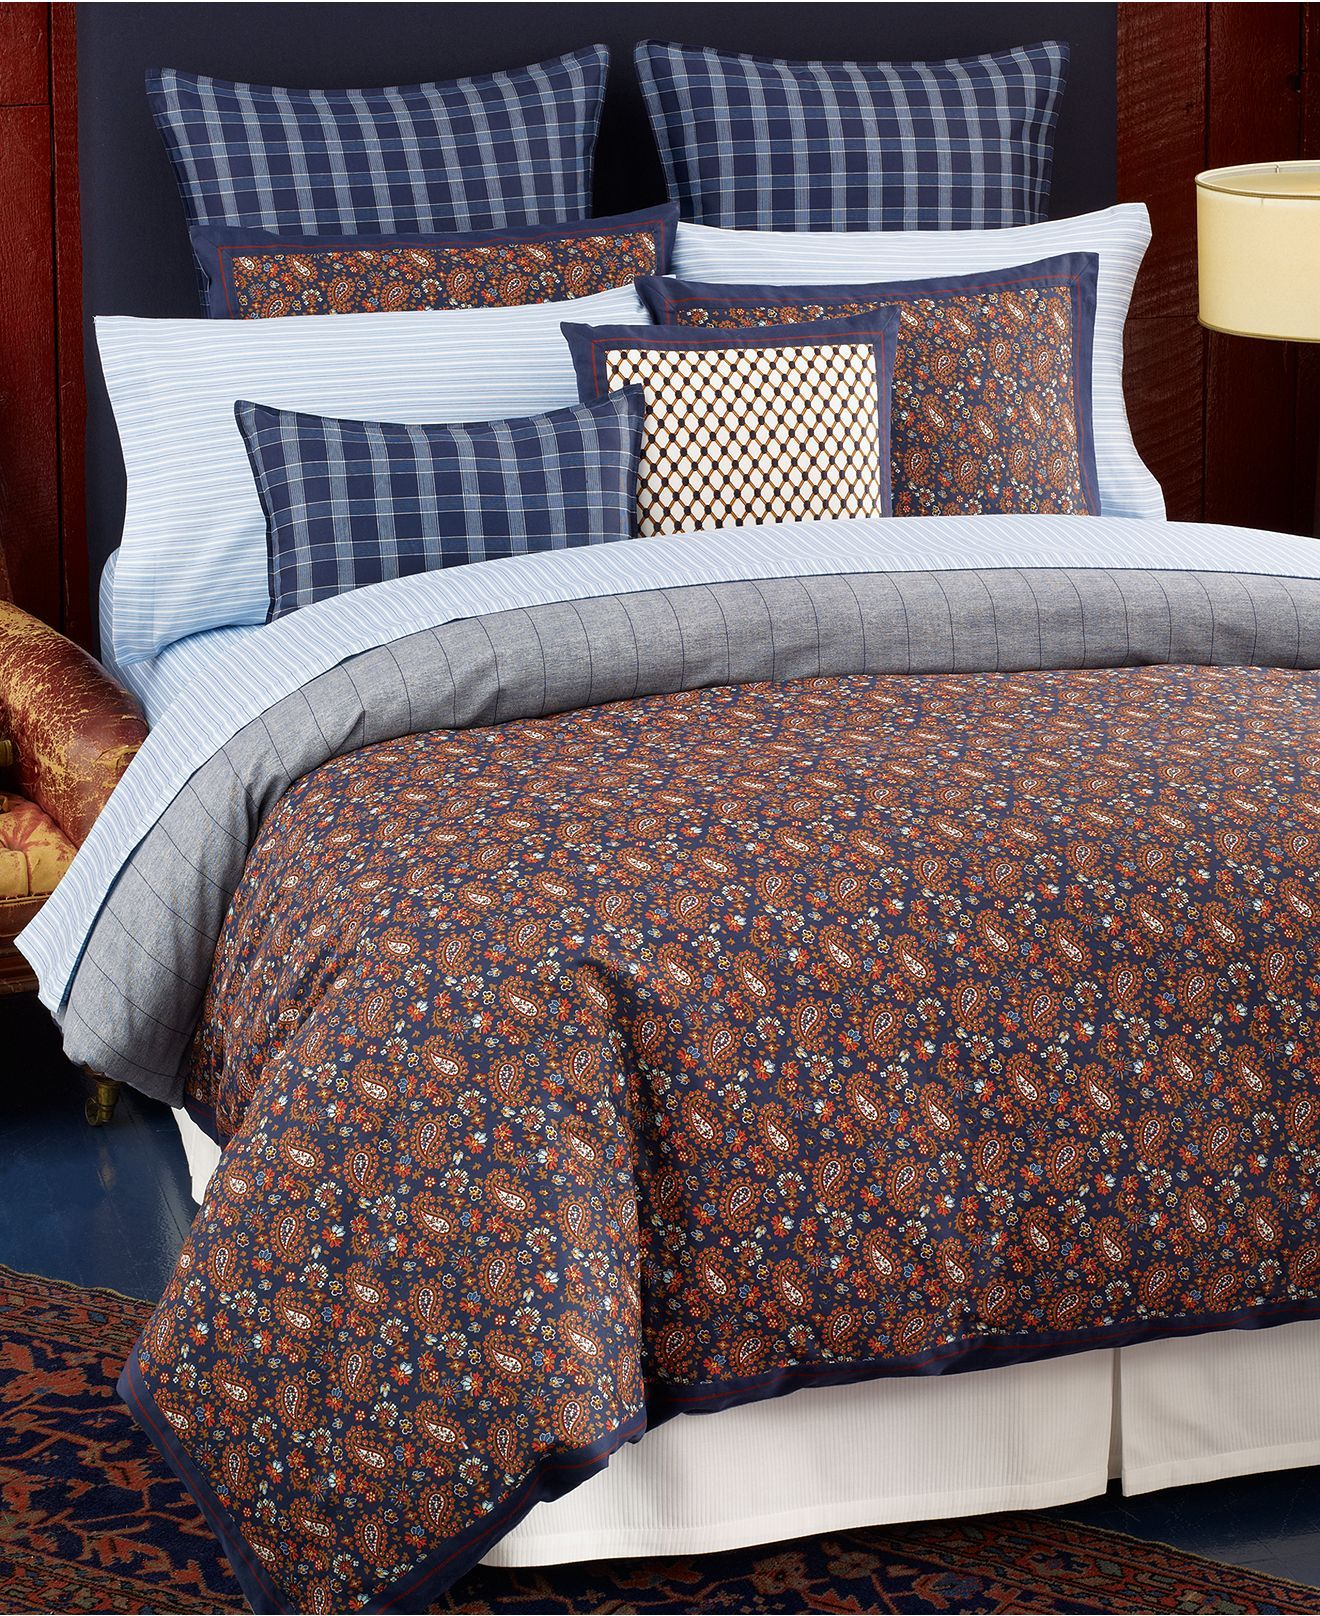 Tommy Hilfiger Bedding Shelburne Paisley Comforter And